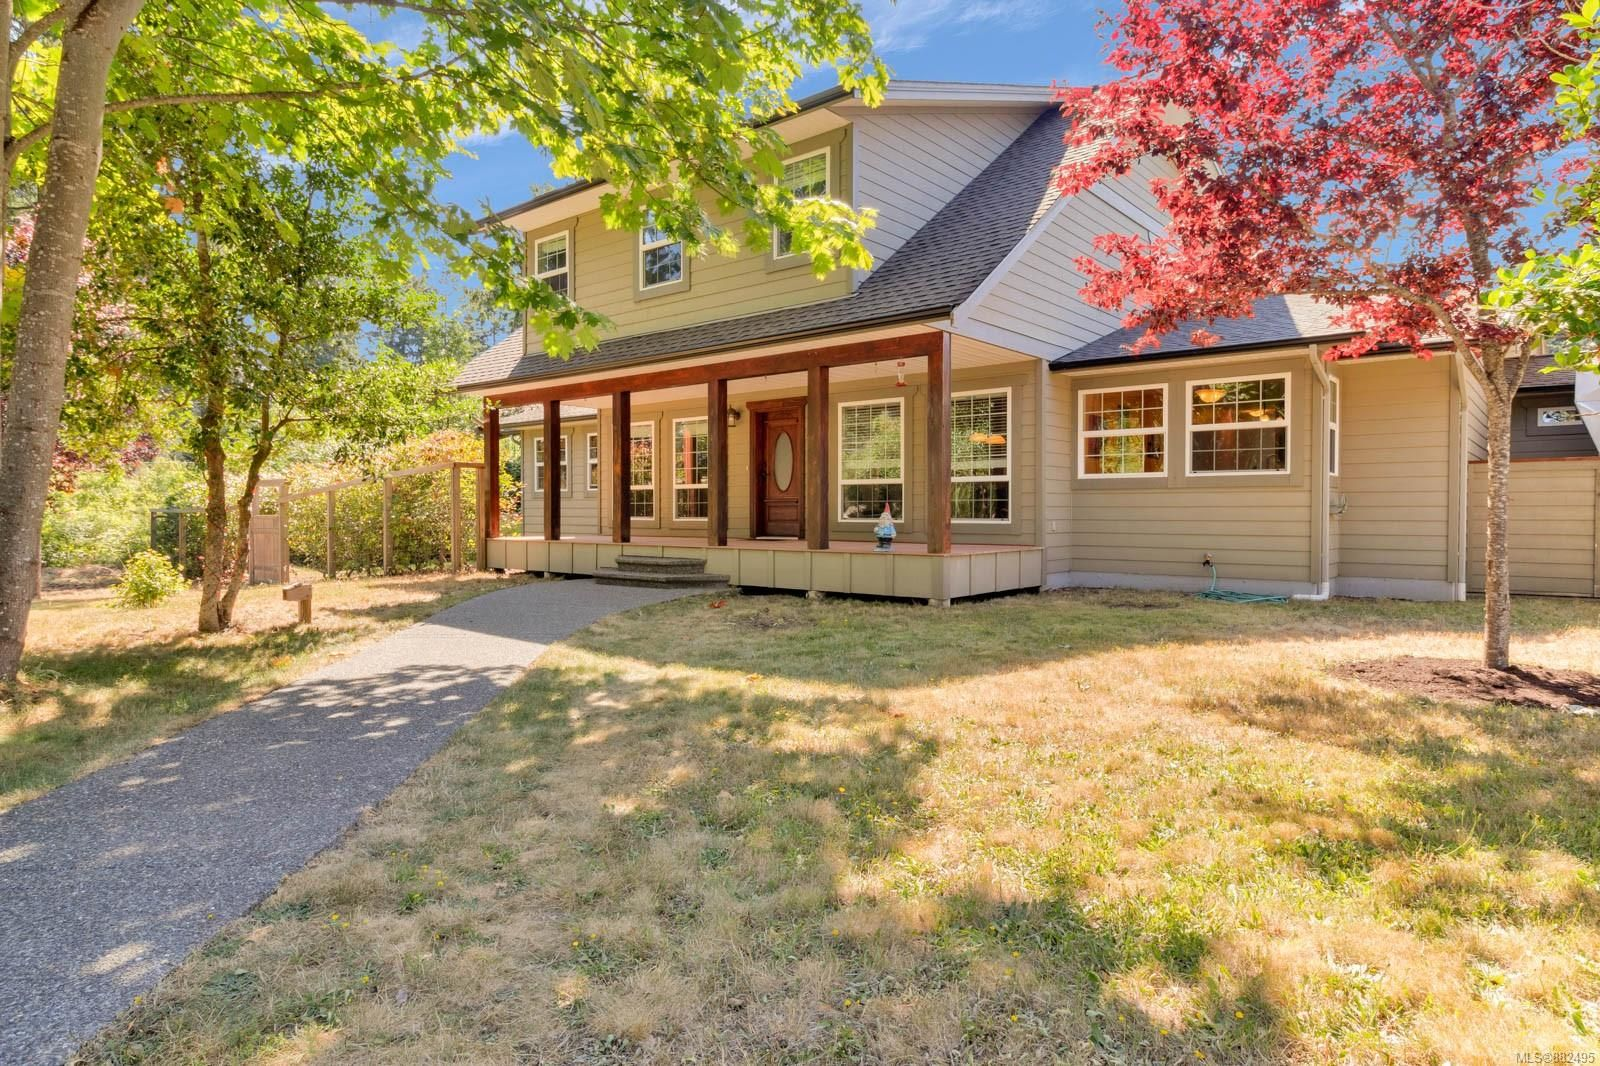 Photo 27: Photos: 375 Butchers Rd in : CV Comox (Town of) House for sale (Comox Valley)  : MLS®# 882495